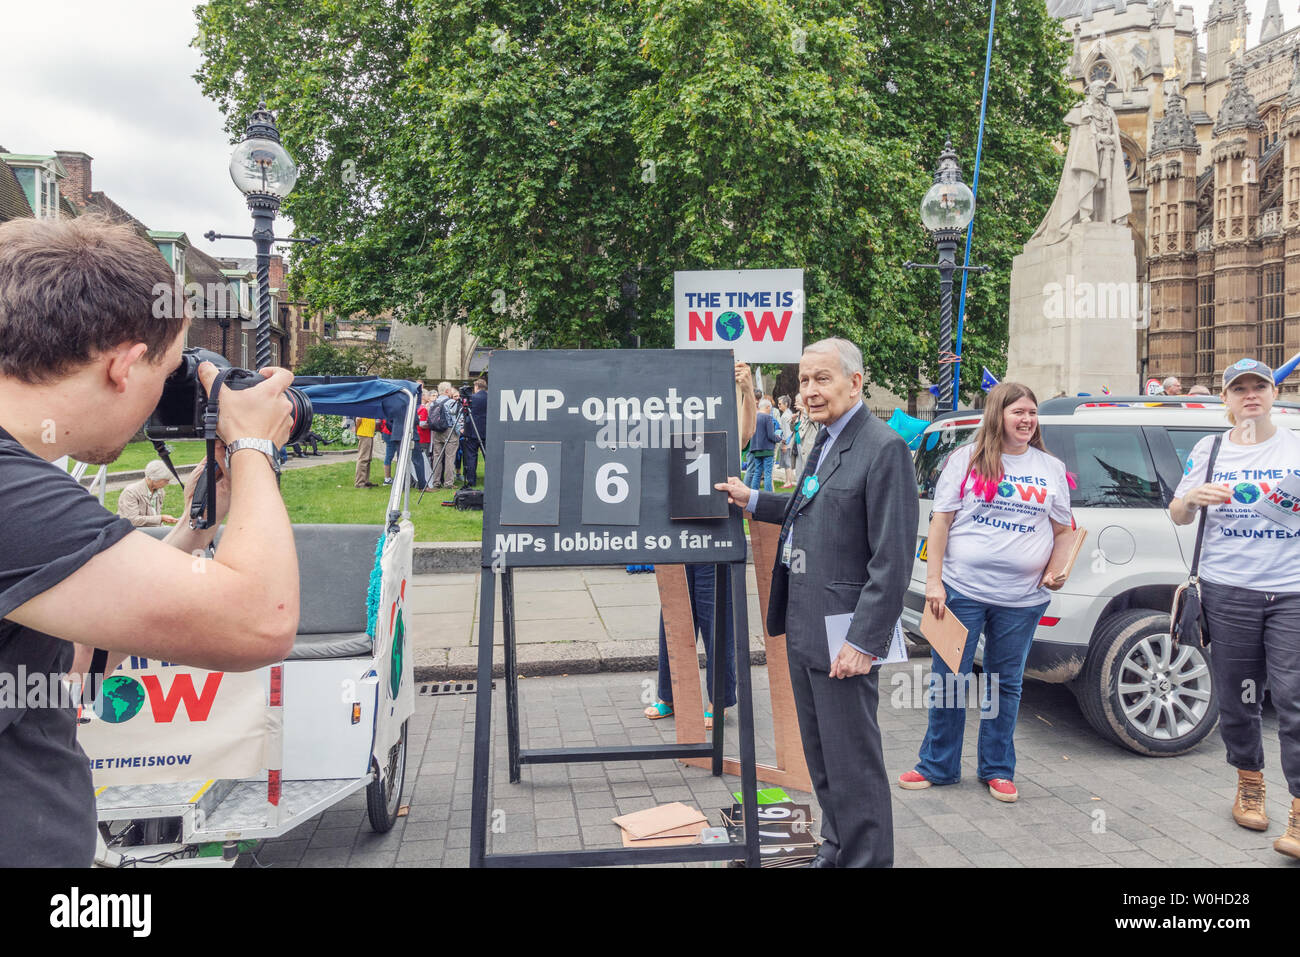 London / UK - June 26th 2019 - Frank Field Member of Parliament at the Climate Coalition 'Time is Now' event to lobby MPs for action on climate change Stock Photo